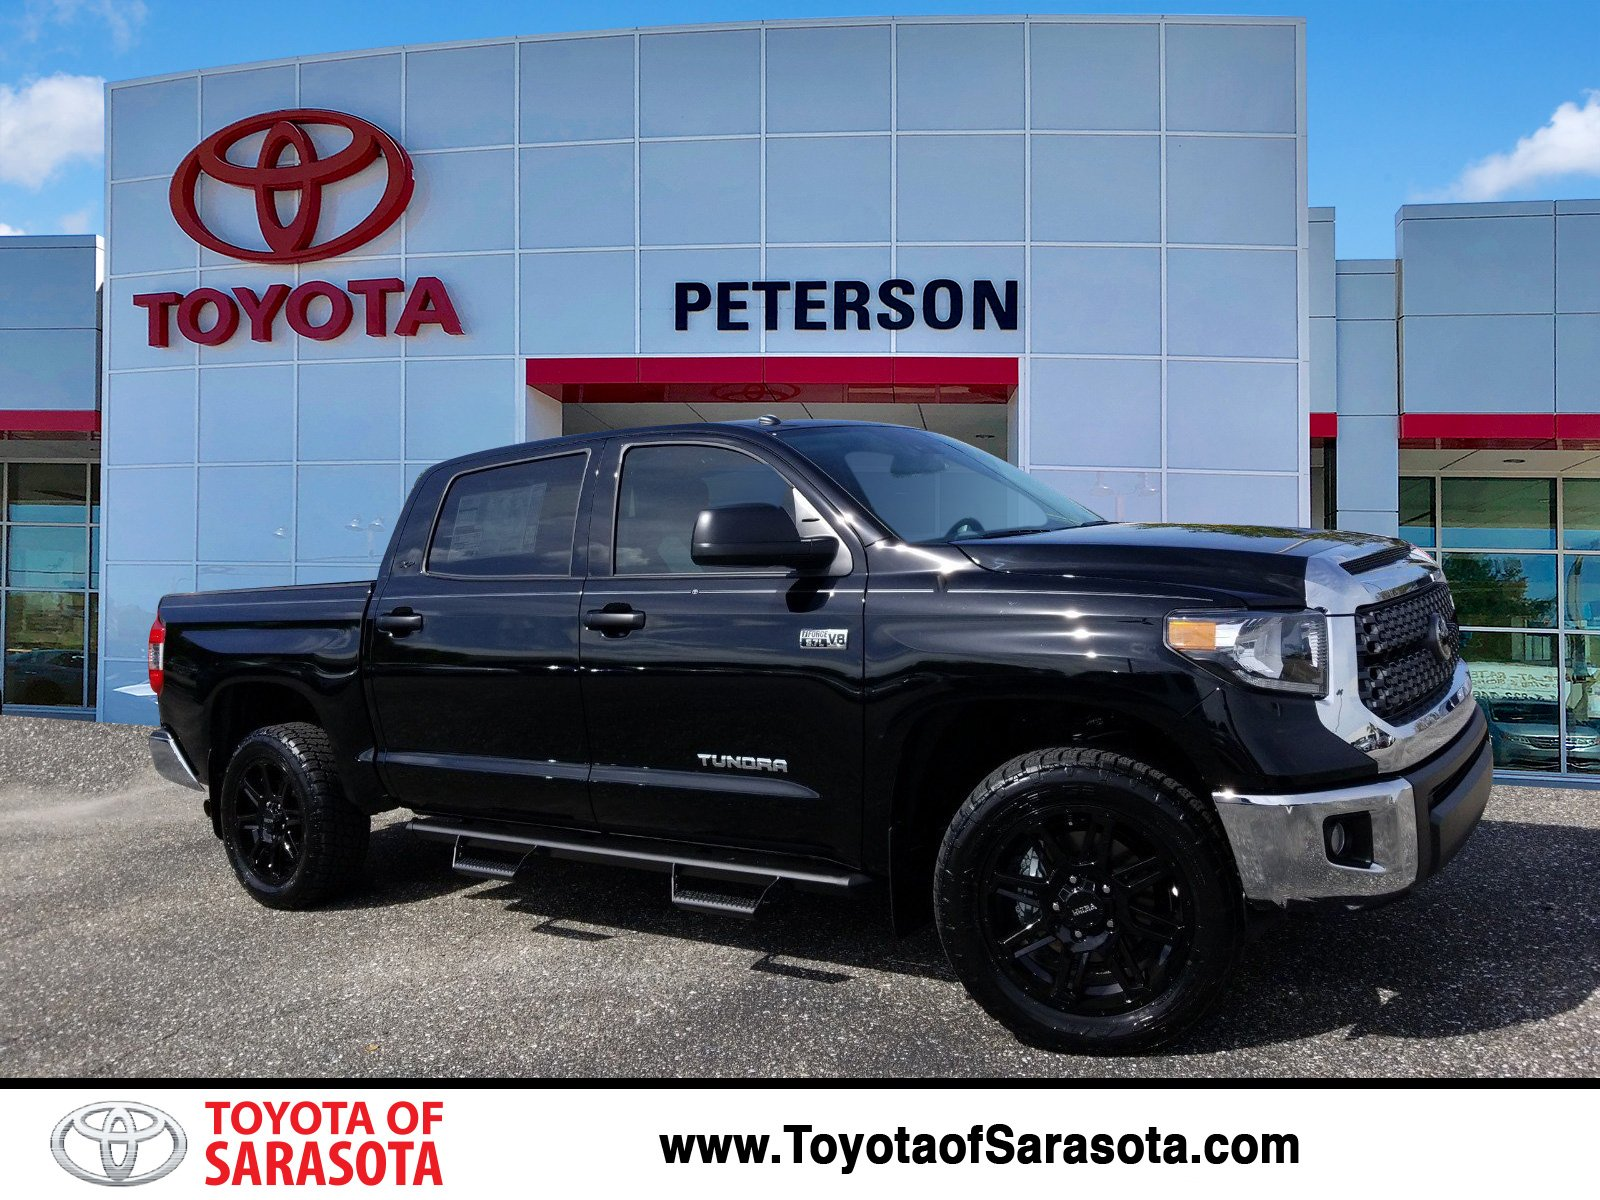 New 2019 Toyota Tundra Sr5 Kx780642 Peterson Toyota Of Sarasota